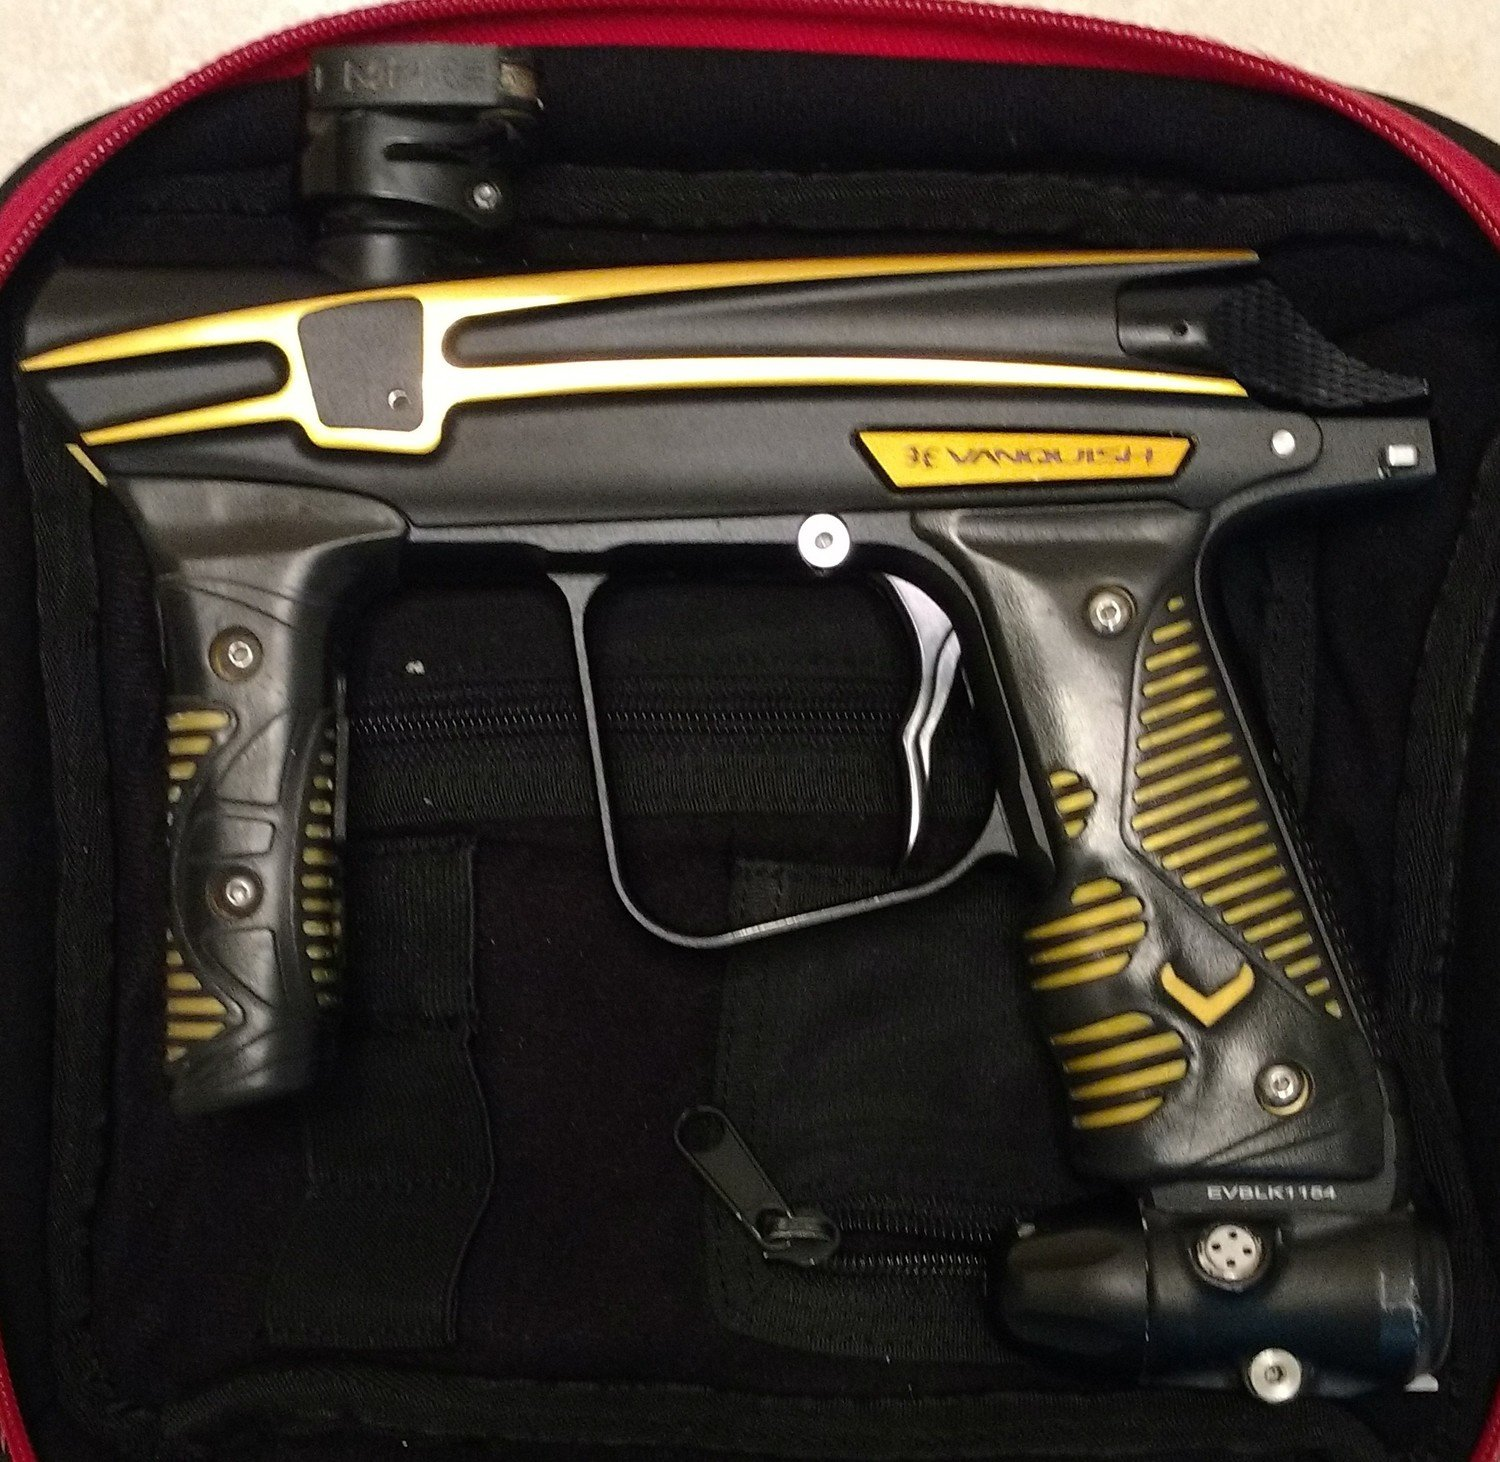 Used Empire Vanquish 1.5 Marker - Filthy Rich (Black/Gold)